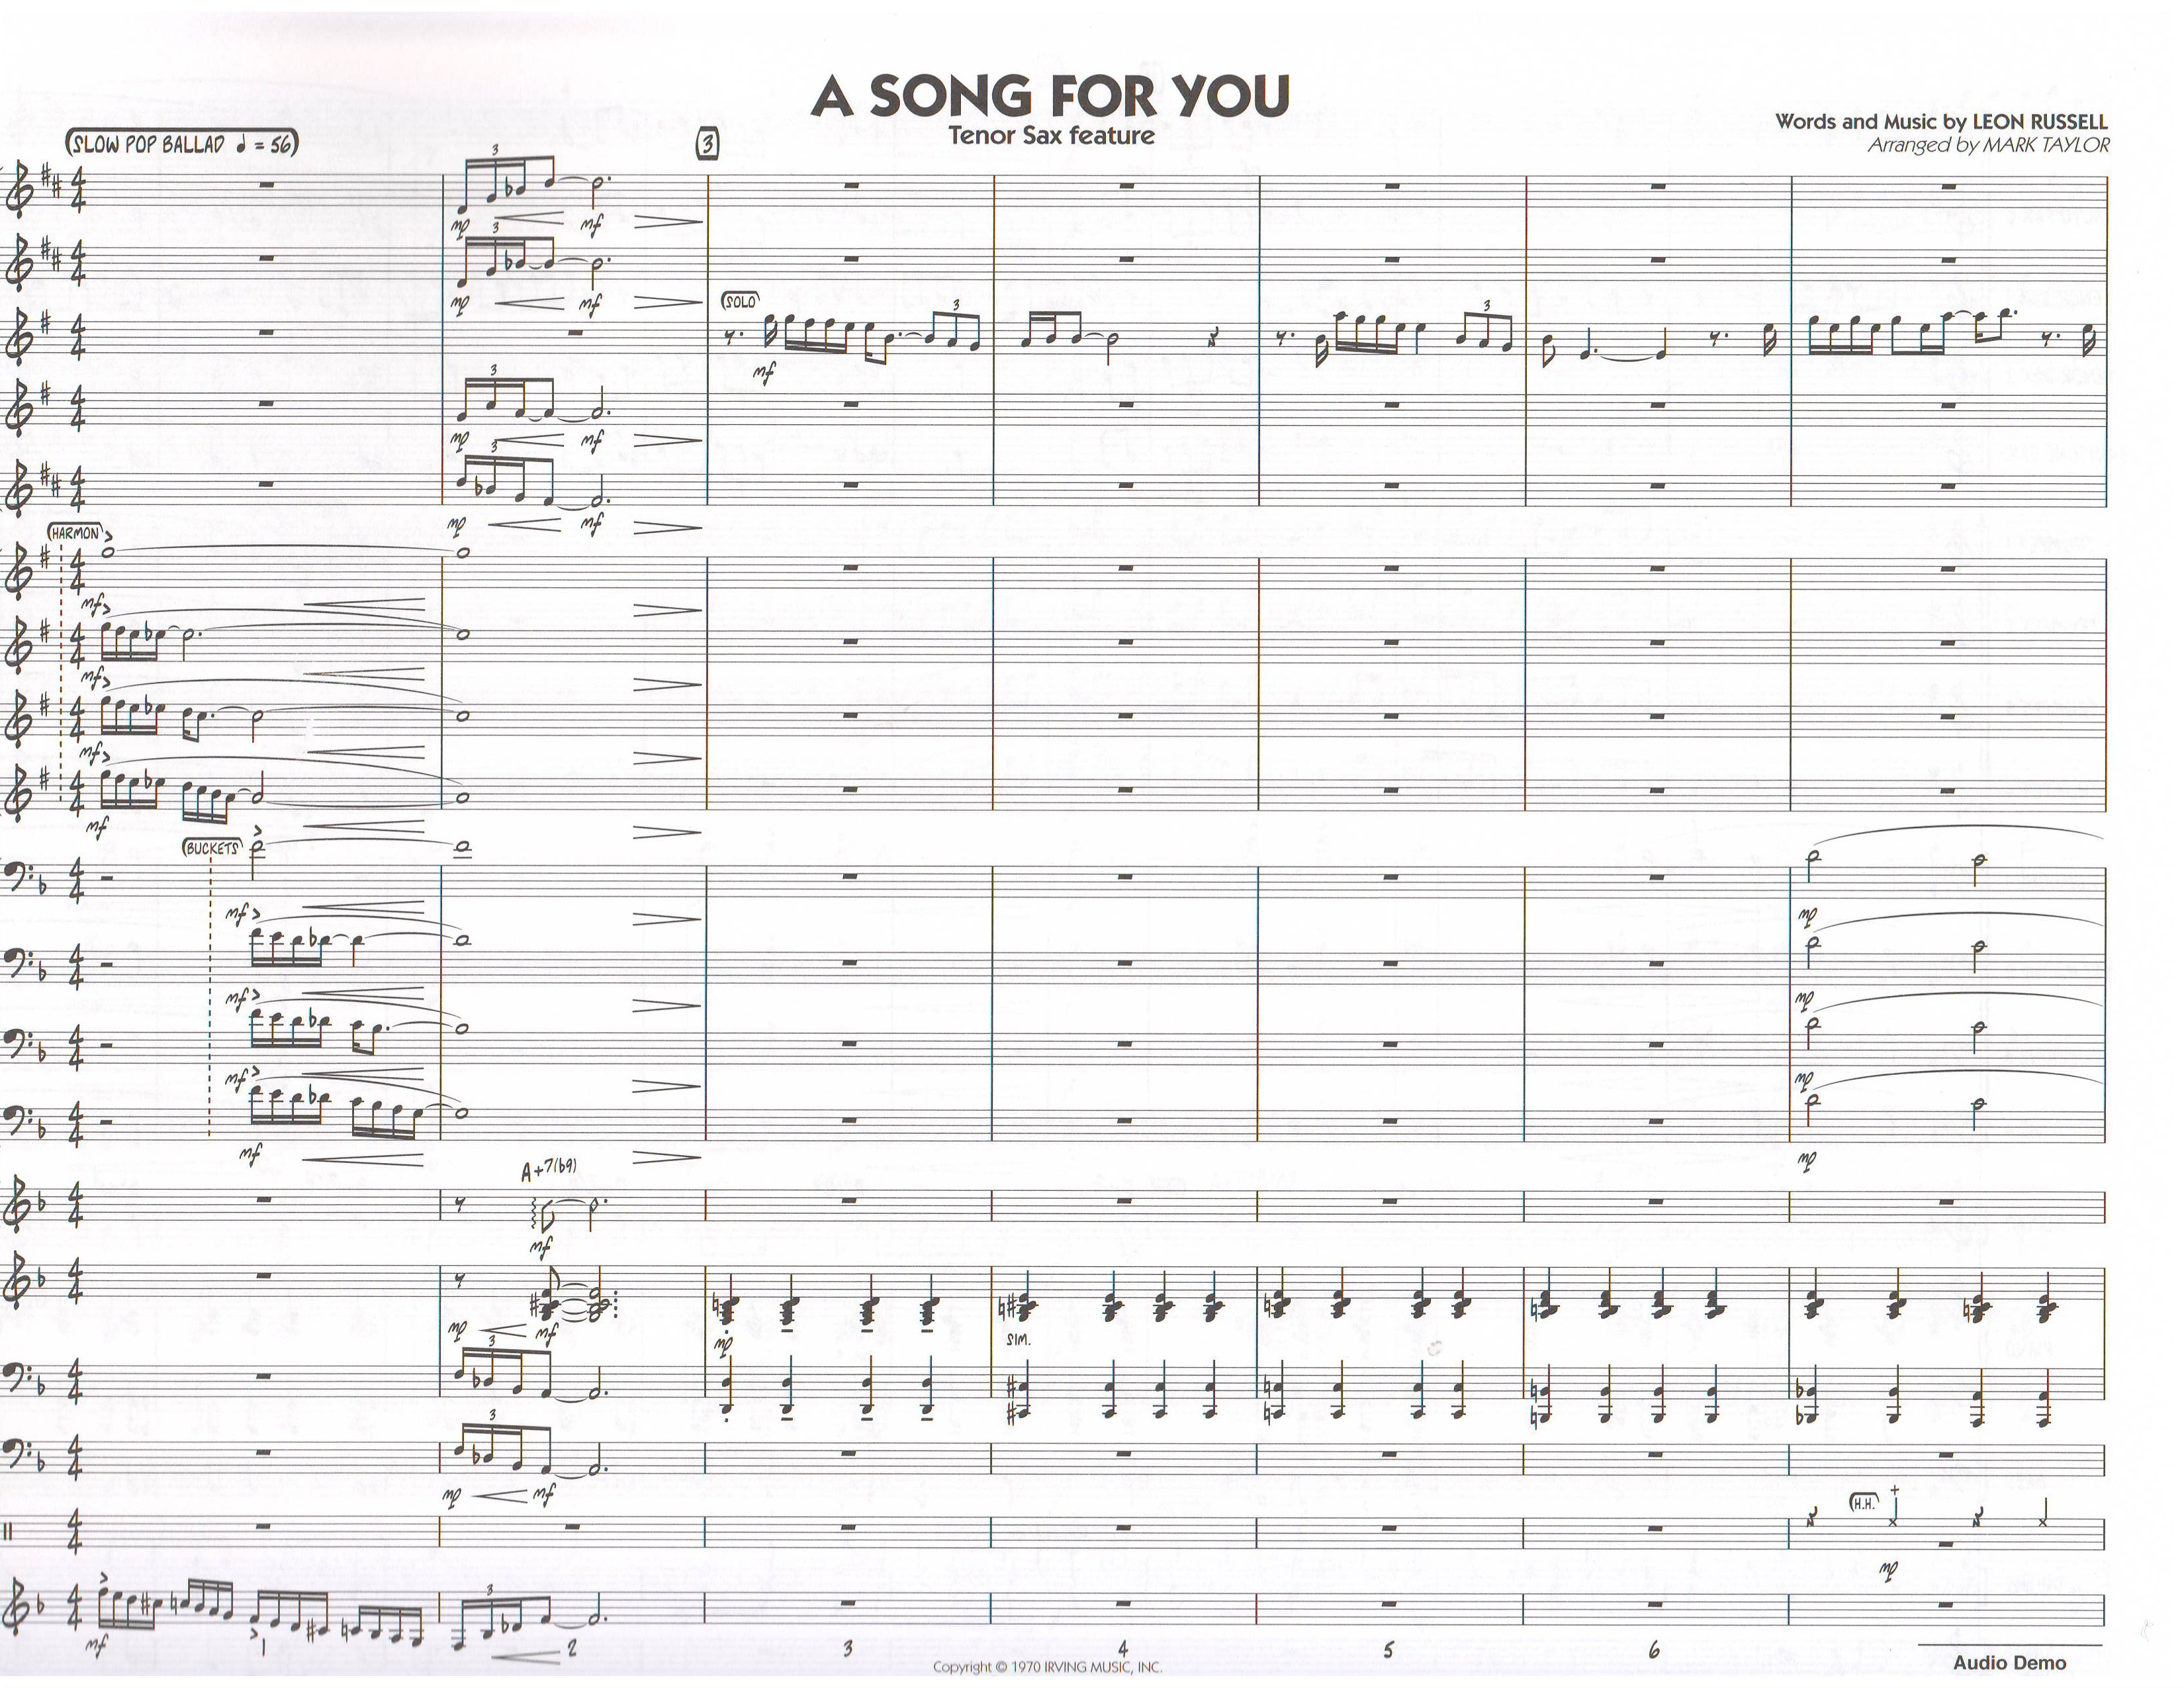 A SONG FOR YOU - Jazz Ensemble (Big Band), Popular Titles